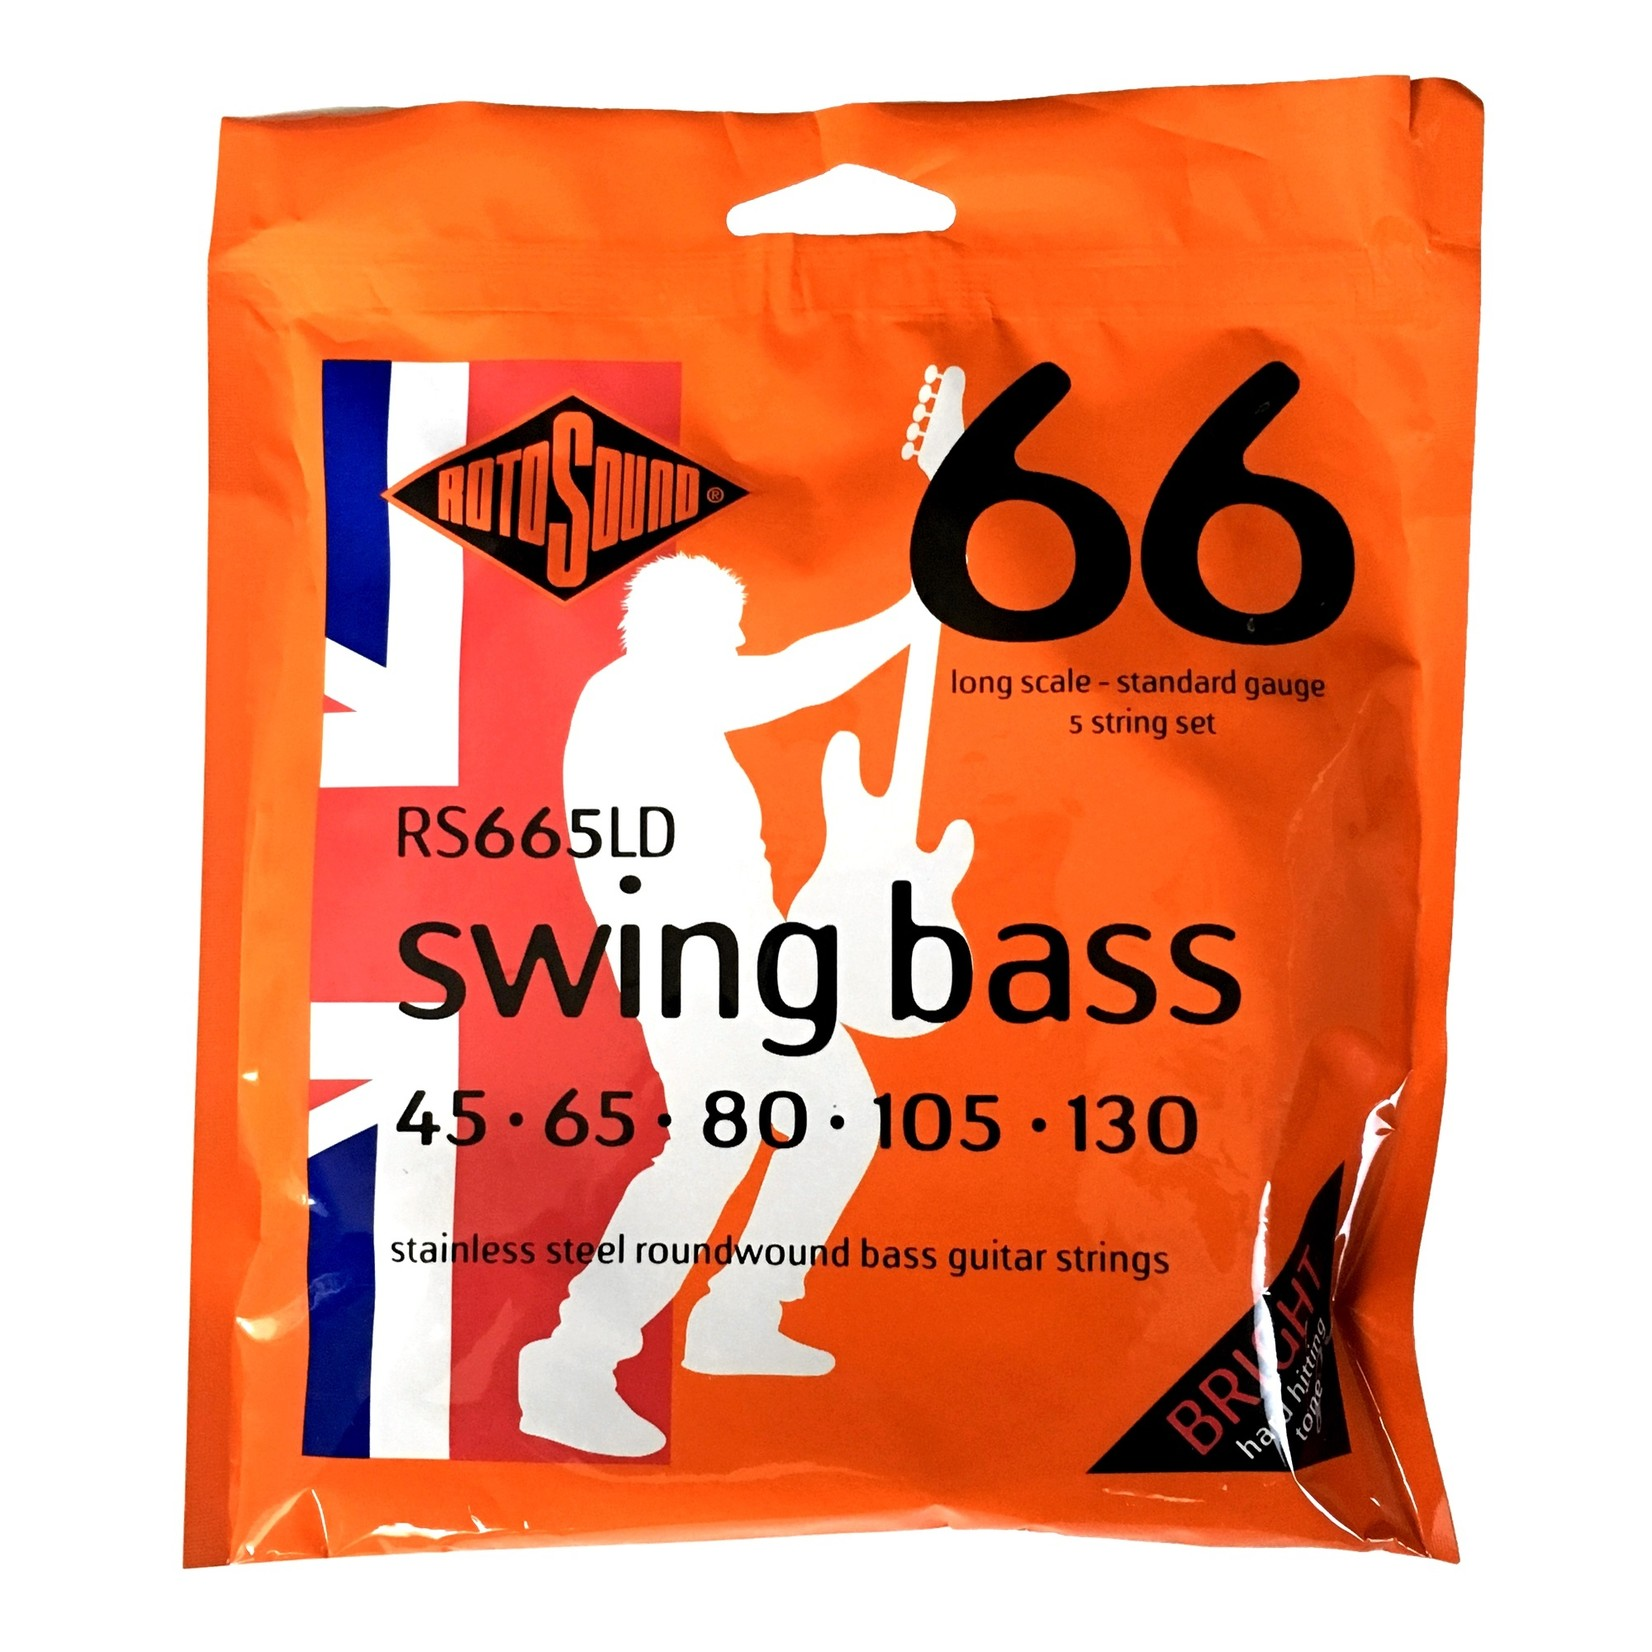 Rotosound Rotosound RS665LD Swing Bass 66 5-String (45-130), Stainless Steel Roundwound Strings